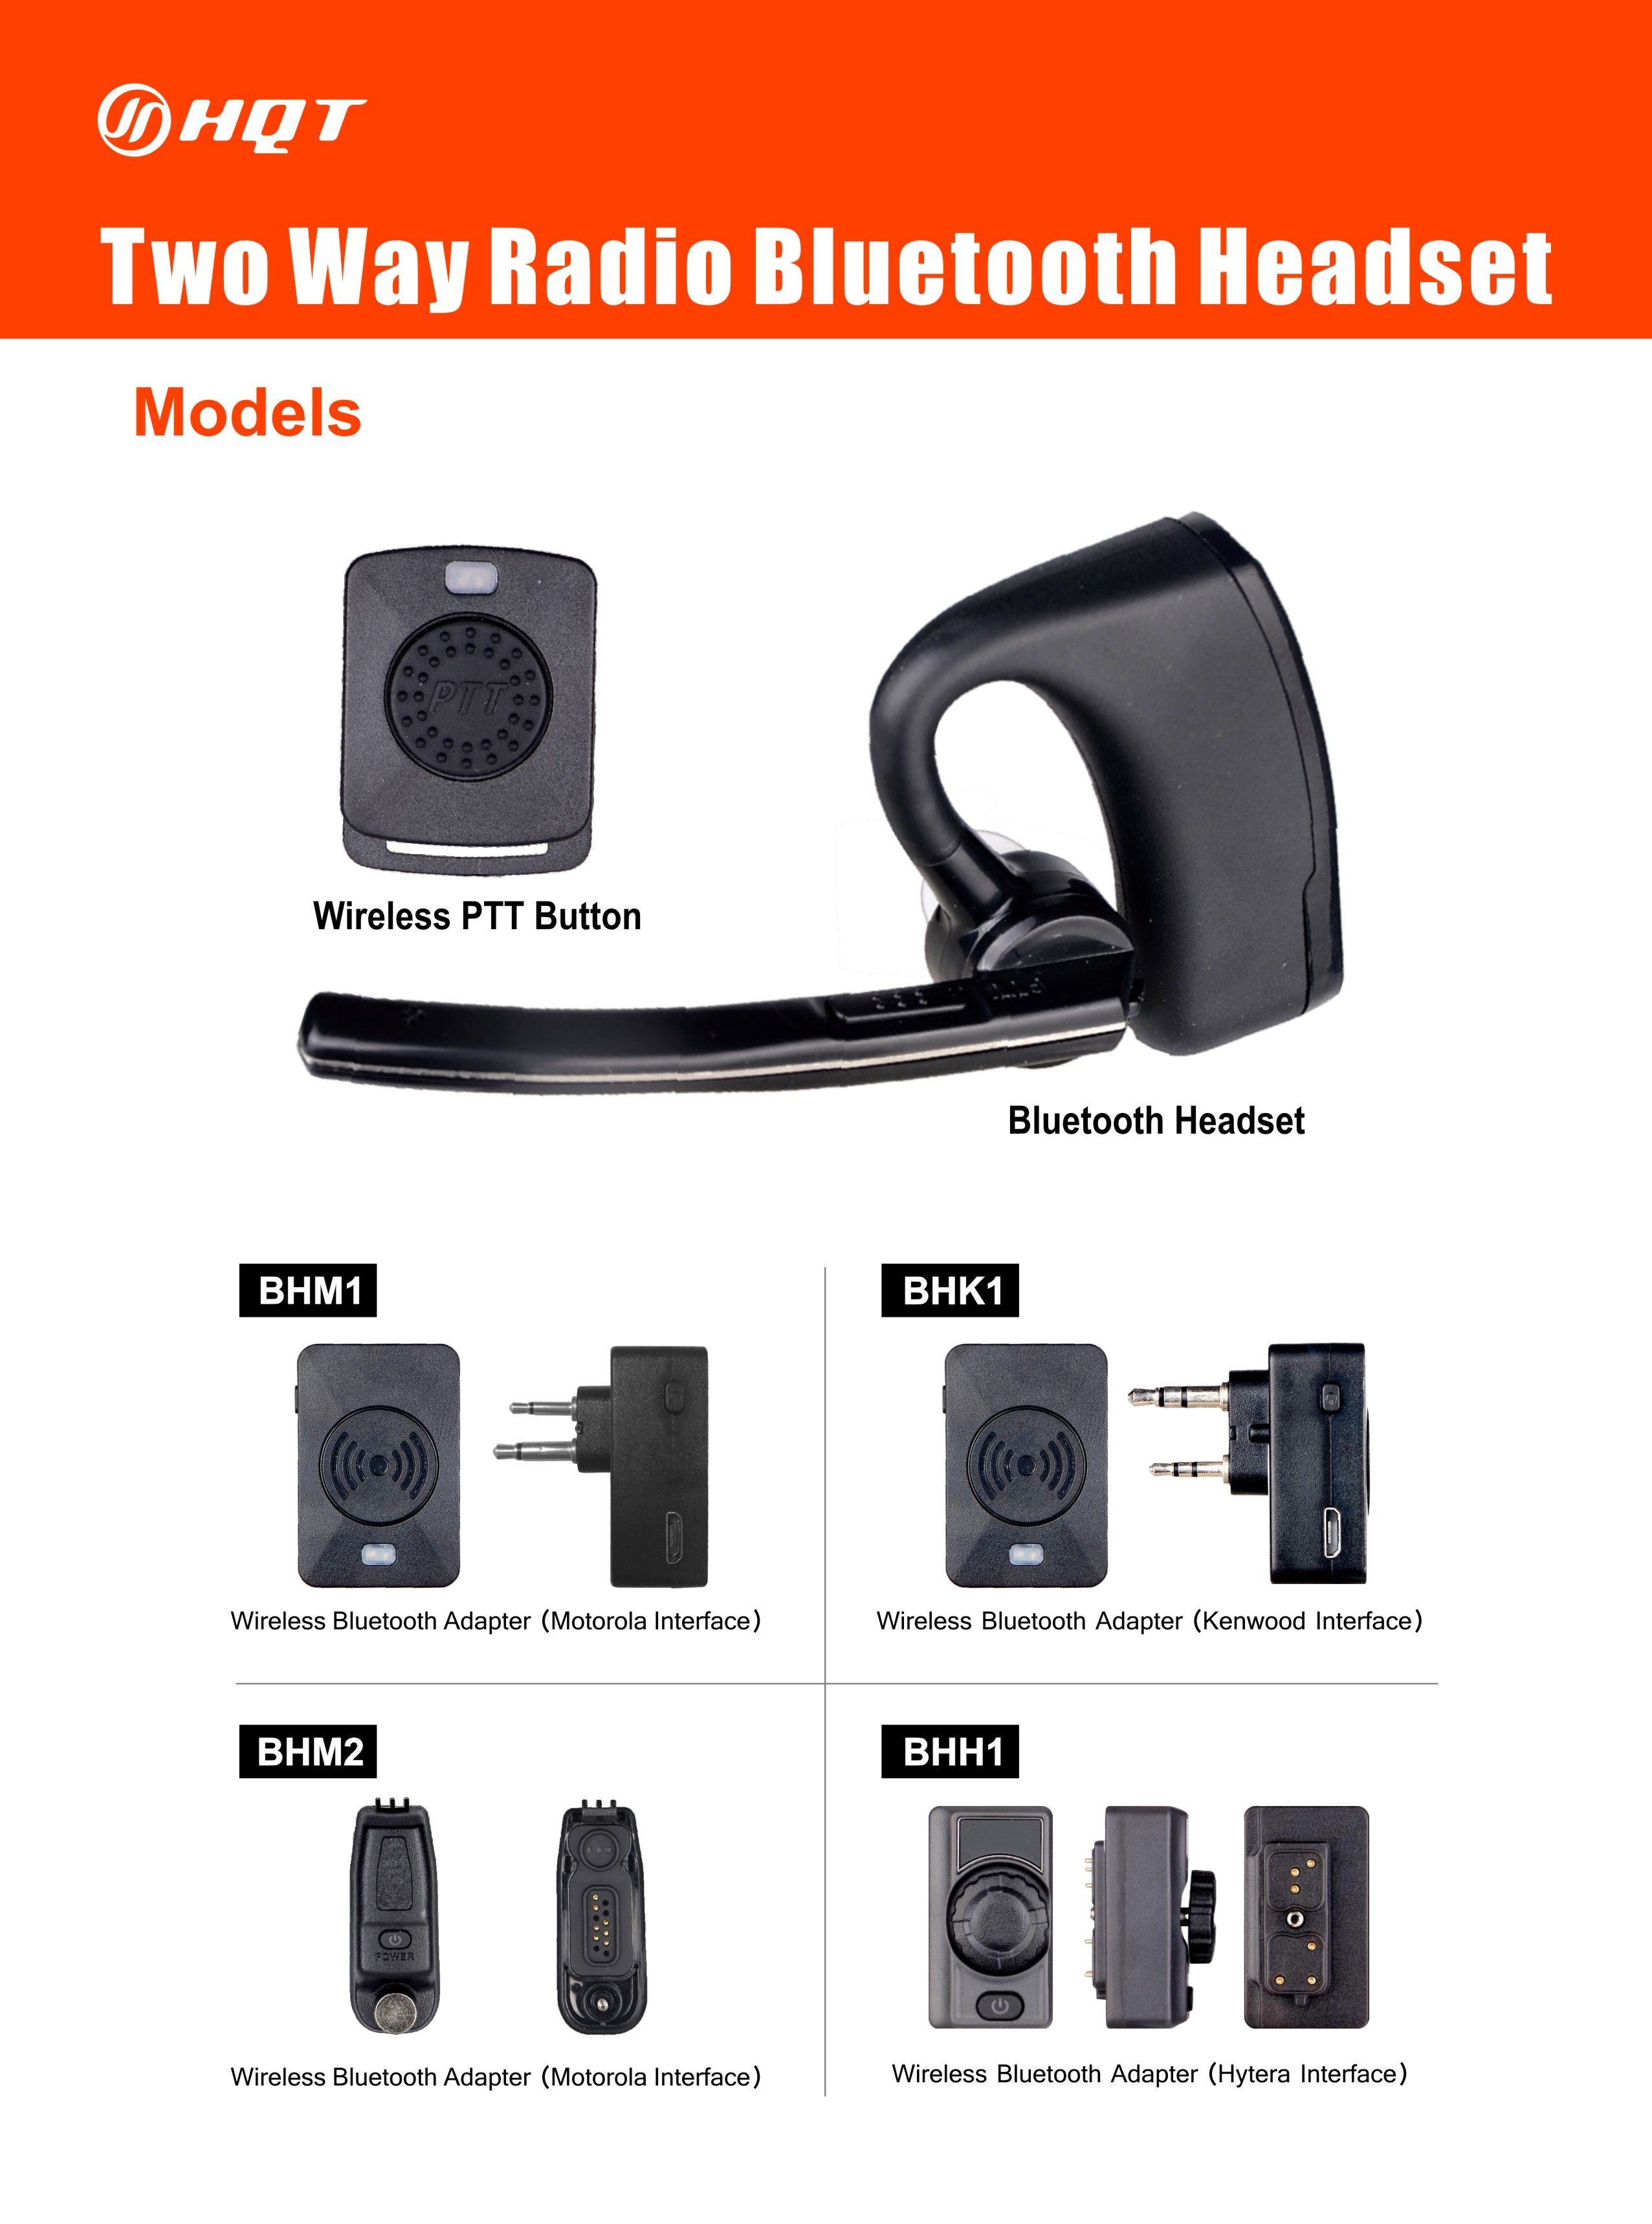 Dual Purpose Application Available To Connect Two Way Radio And Mobile Phone Simultaneously Two Way Rad Two Way Radio Bluetooth Adapter Bluetooth Headset